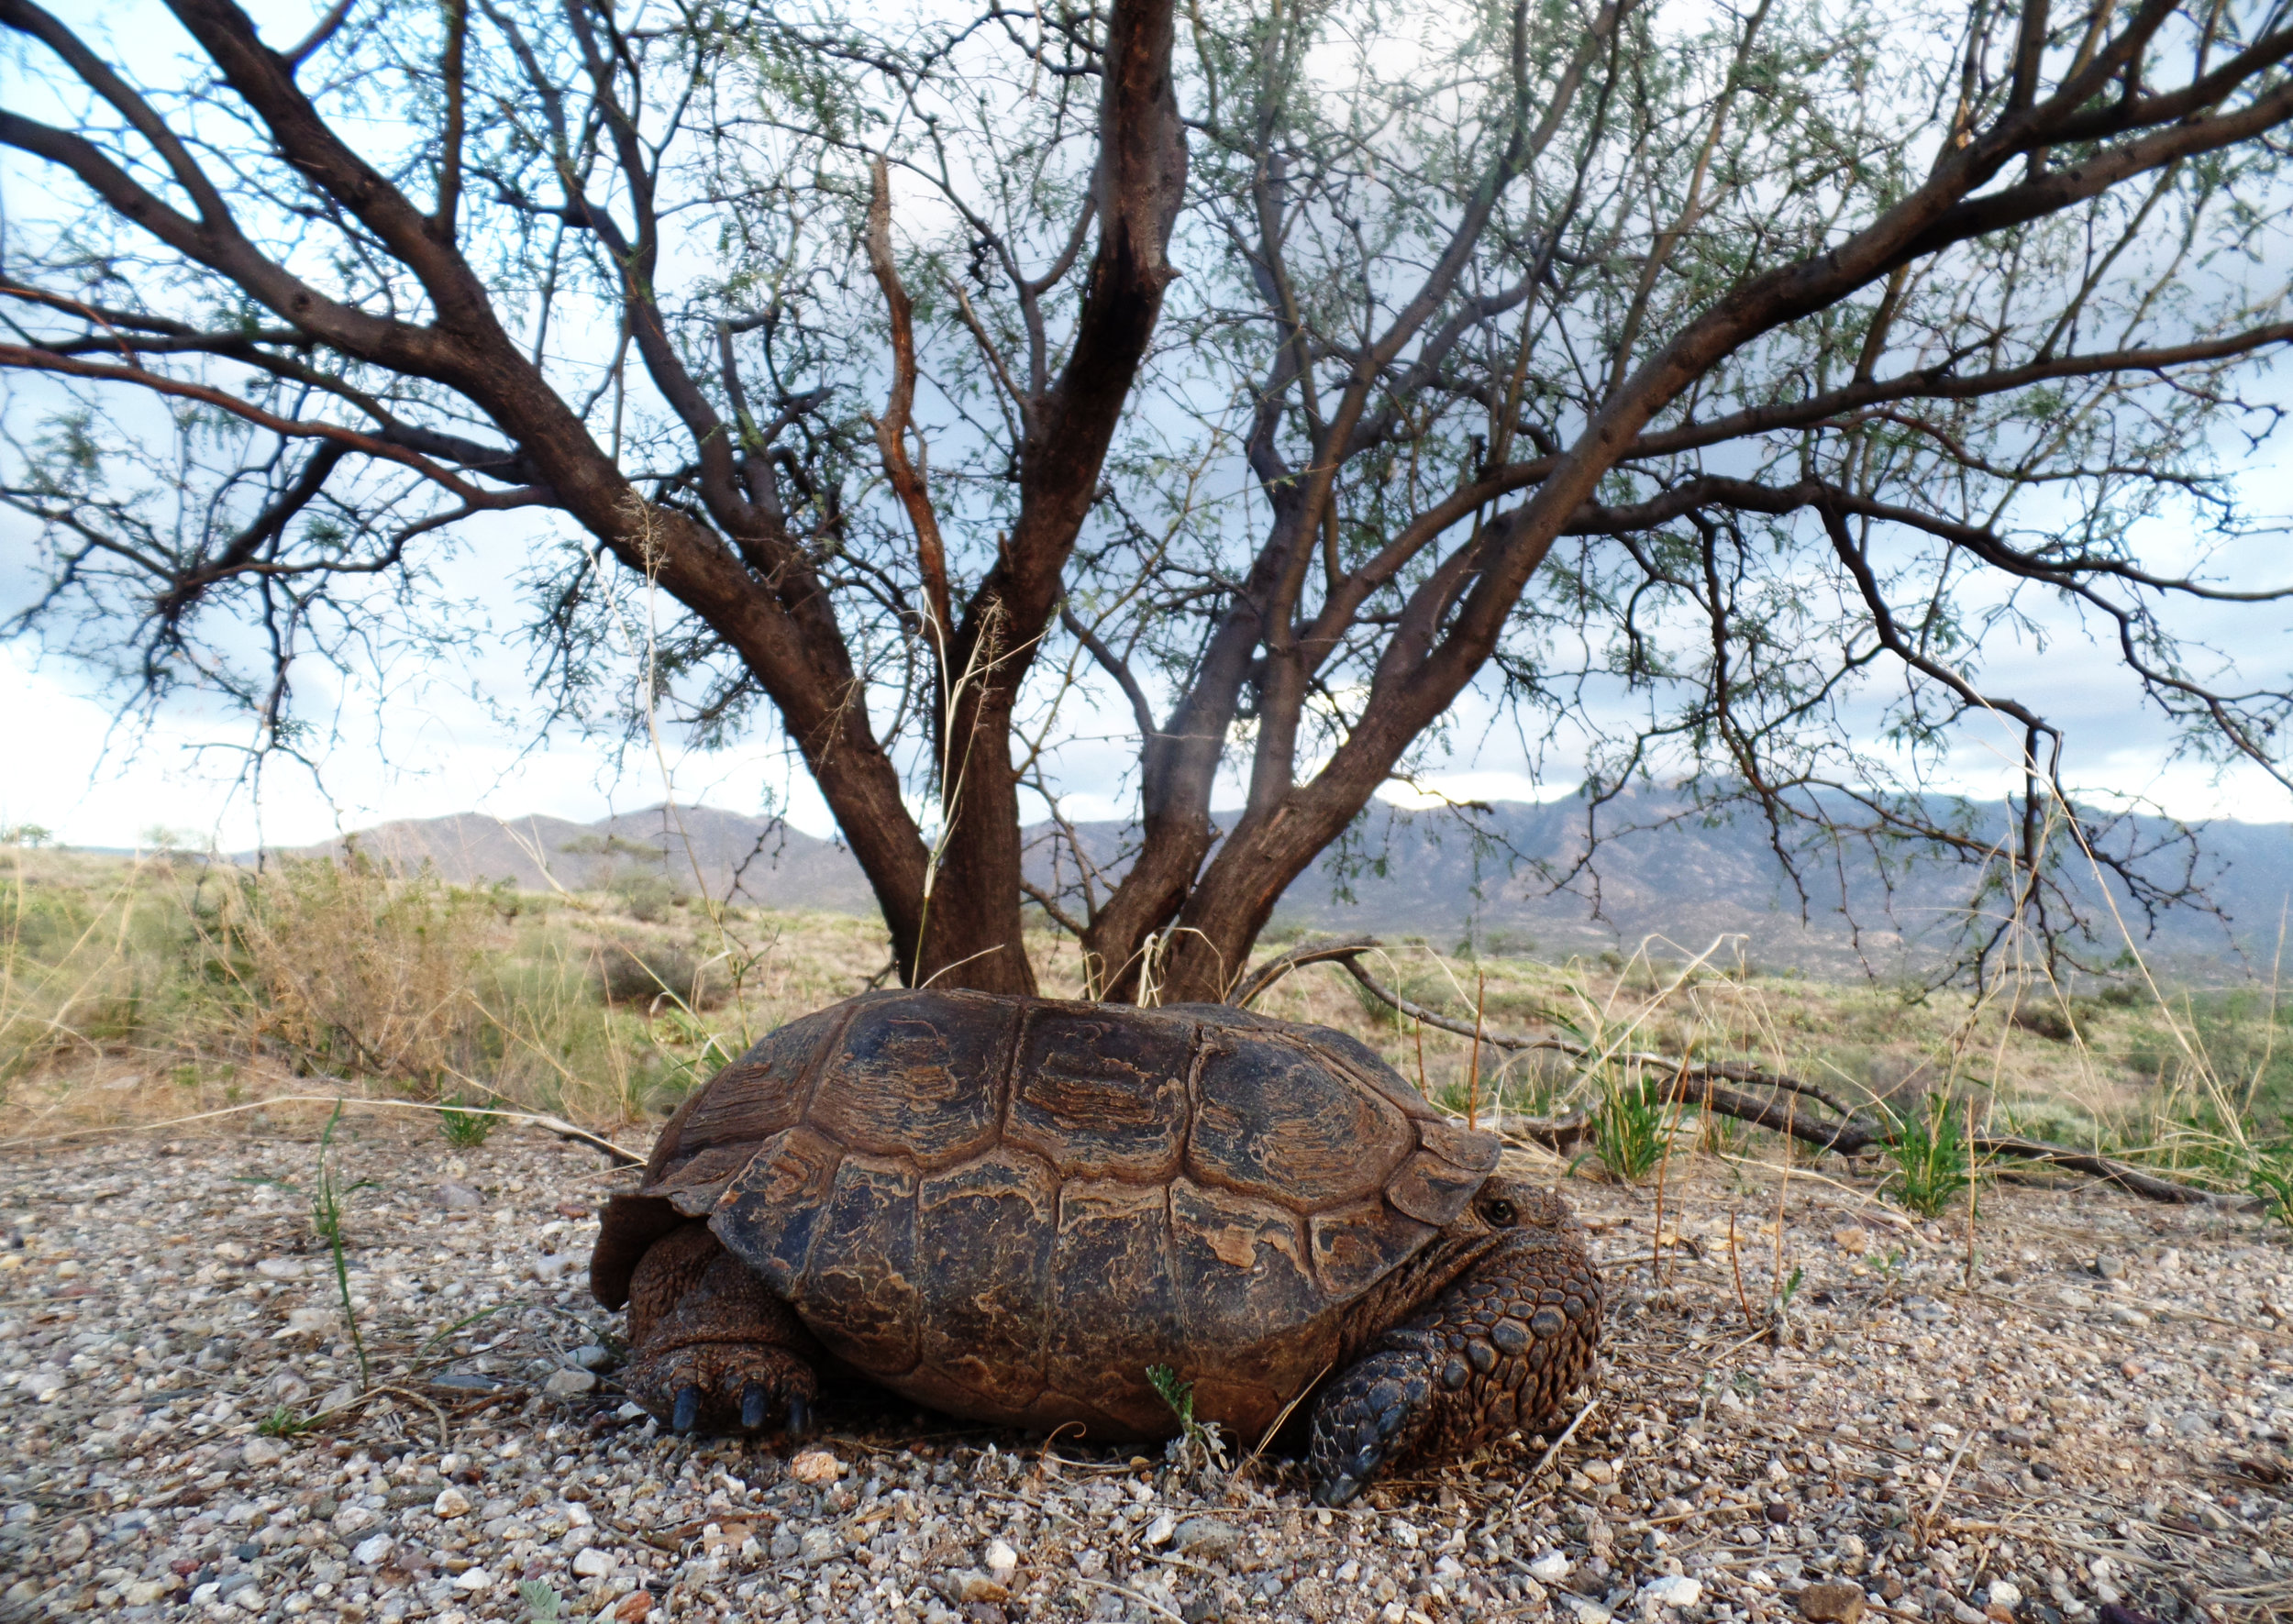 Desert Tortoise seen on my run. First one I have seen in 2018. Should see a number of them in the next month+.